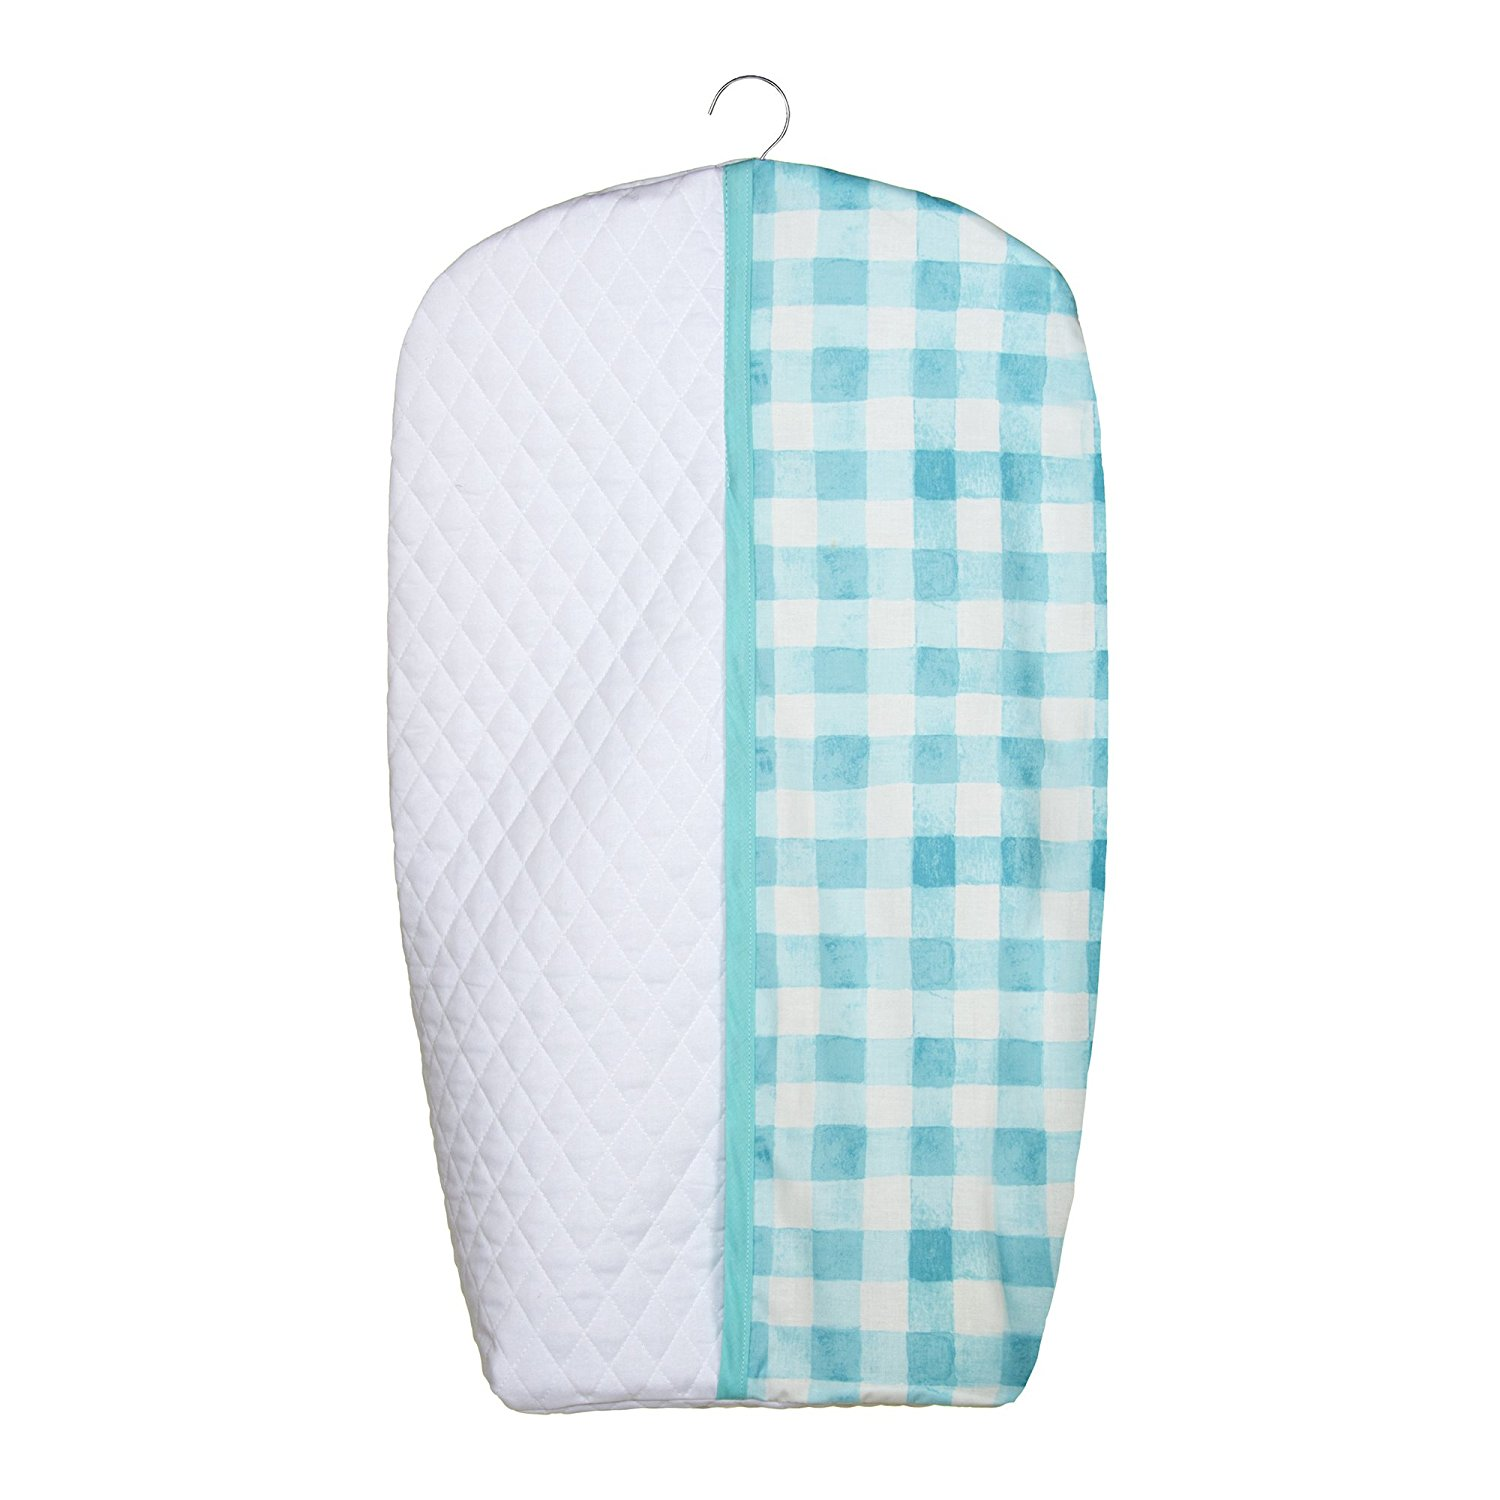 Glenna Jean Cottage Collection Willow Diaper Stacker by Glenna Jean Cottage Collection